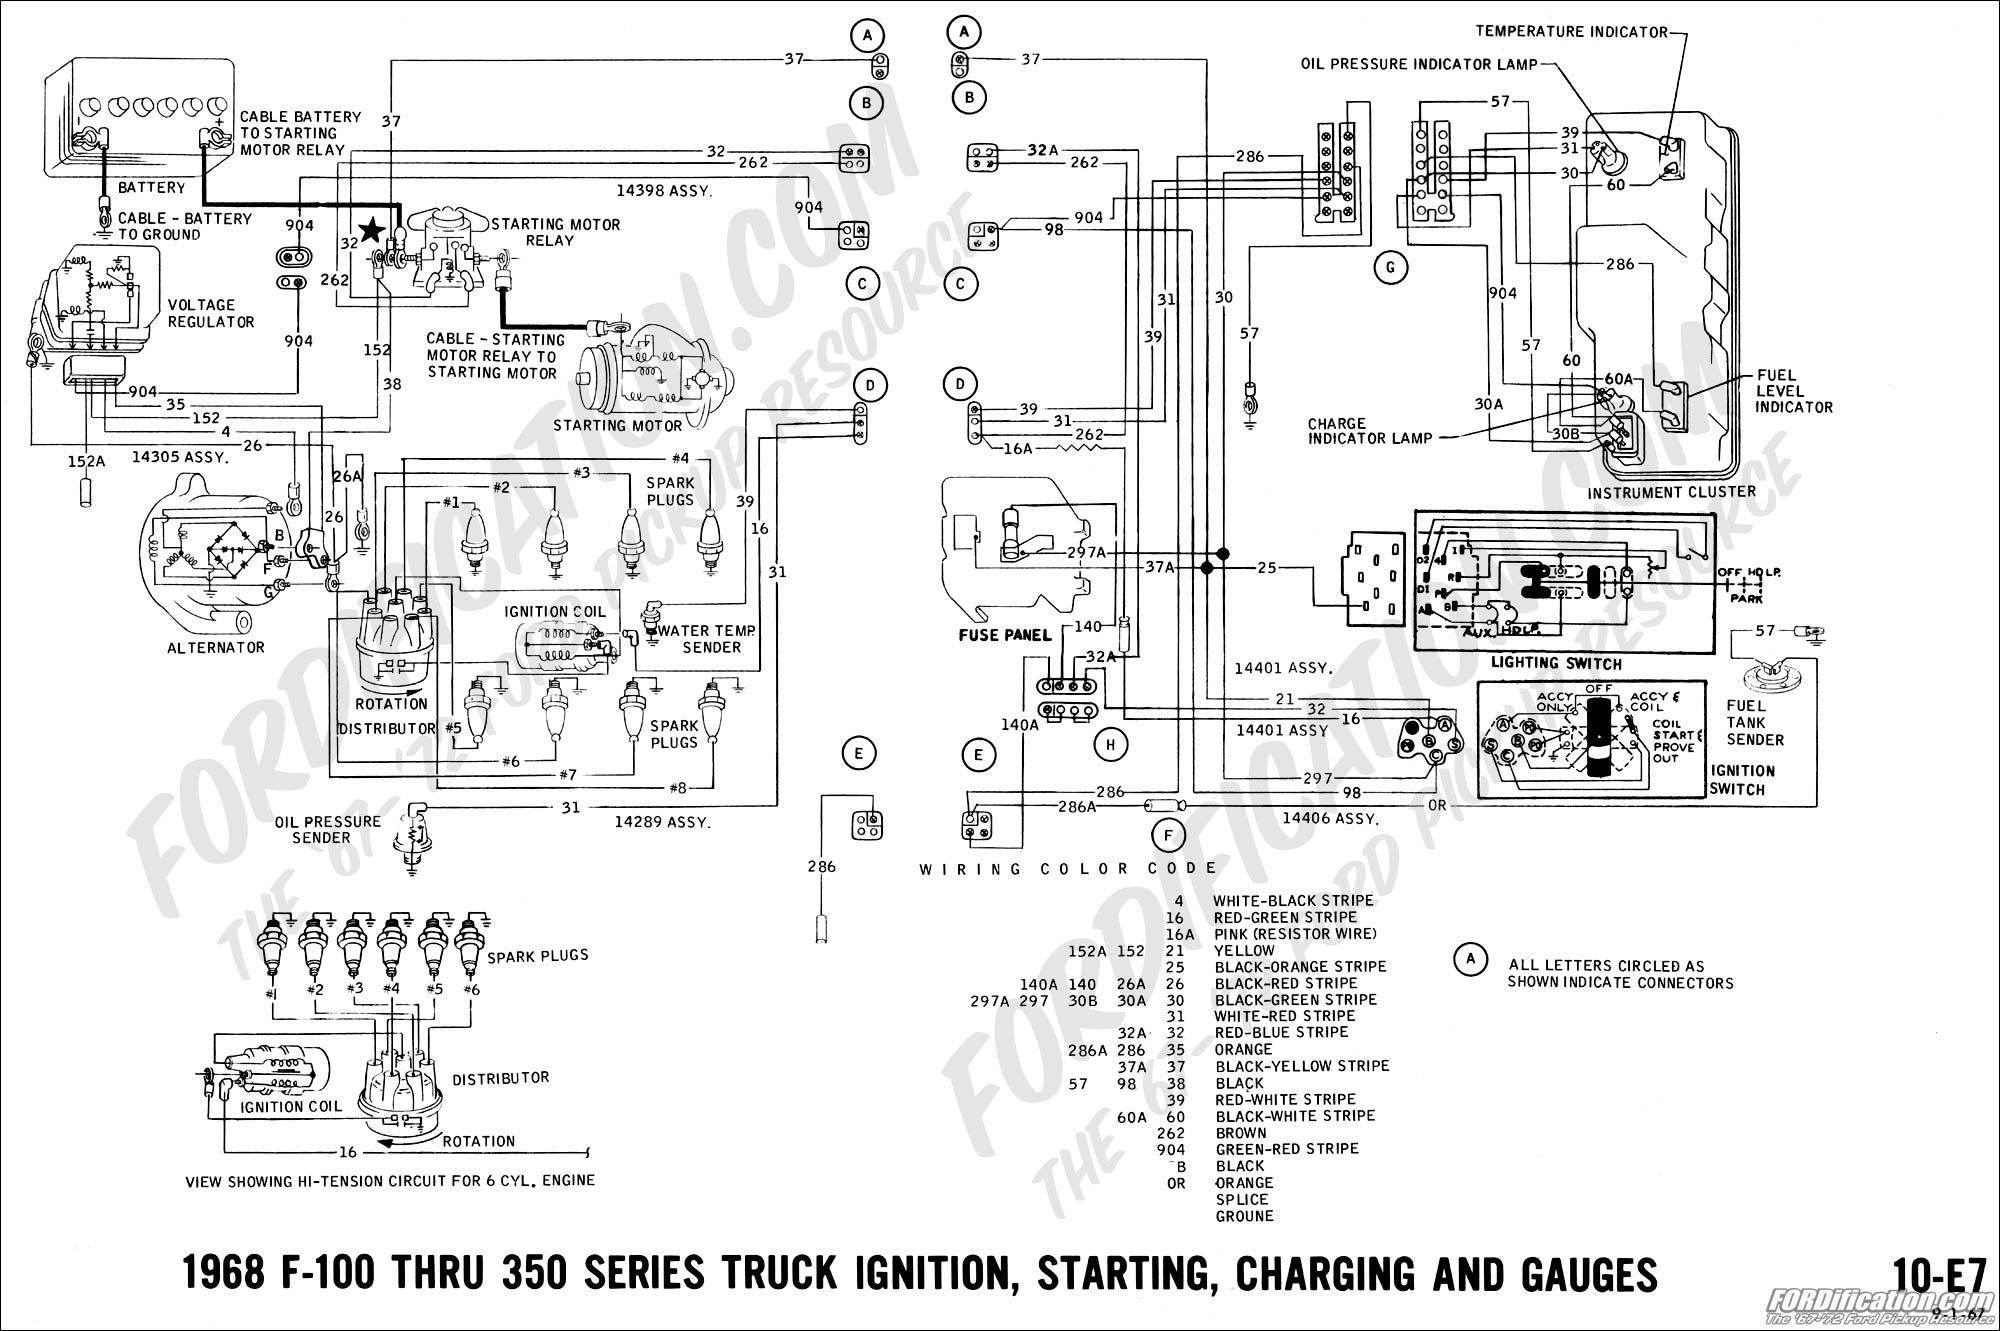 68 09 ford truck technical drawings and schematics section h wiring 1999 F150 Radio Wiring Diagram at aneh.co